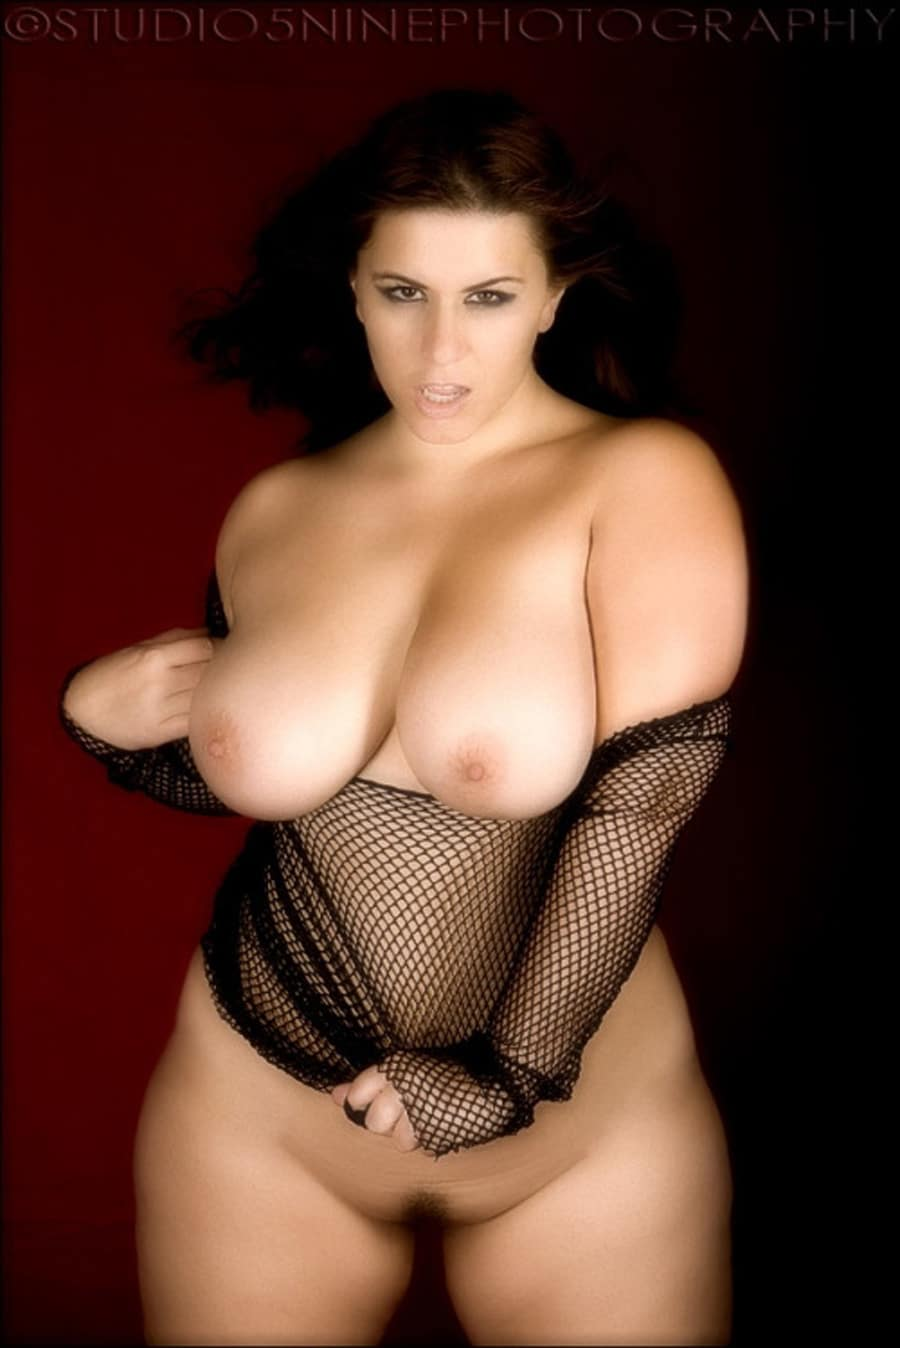 Gros Seins Video - Model page